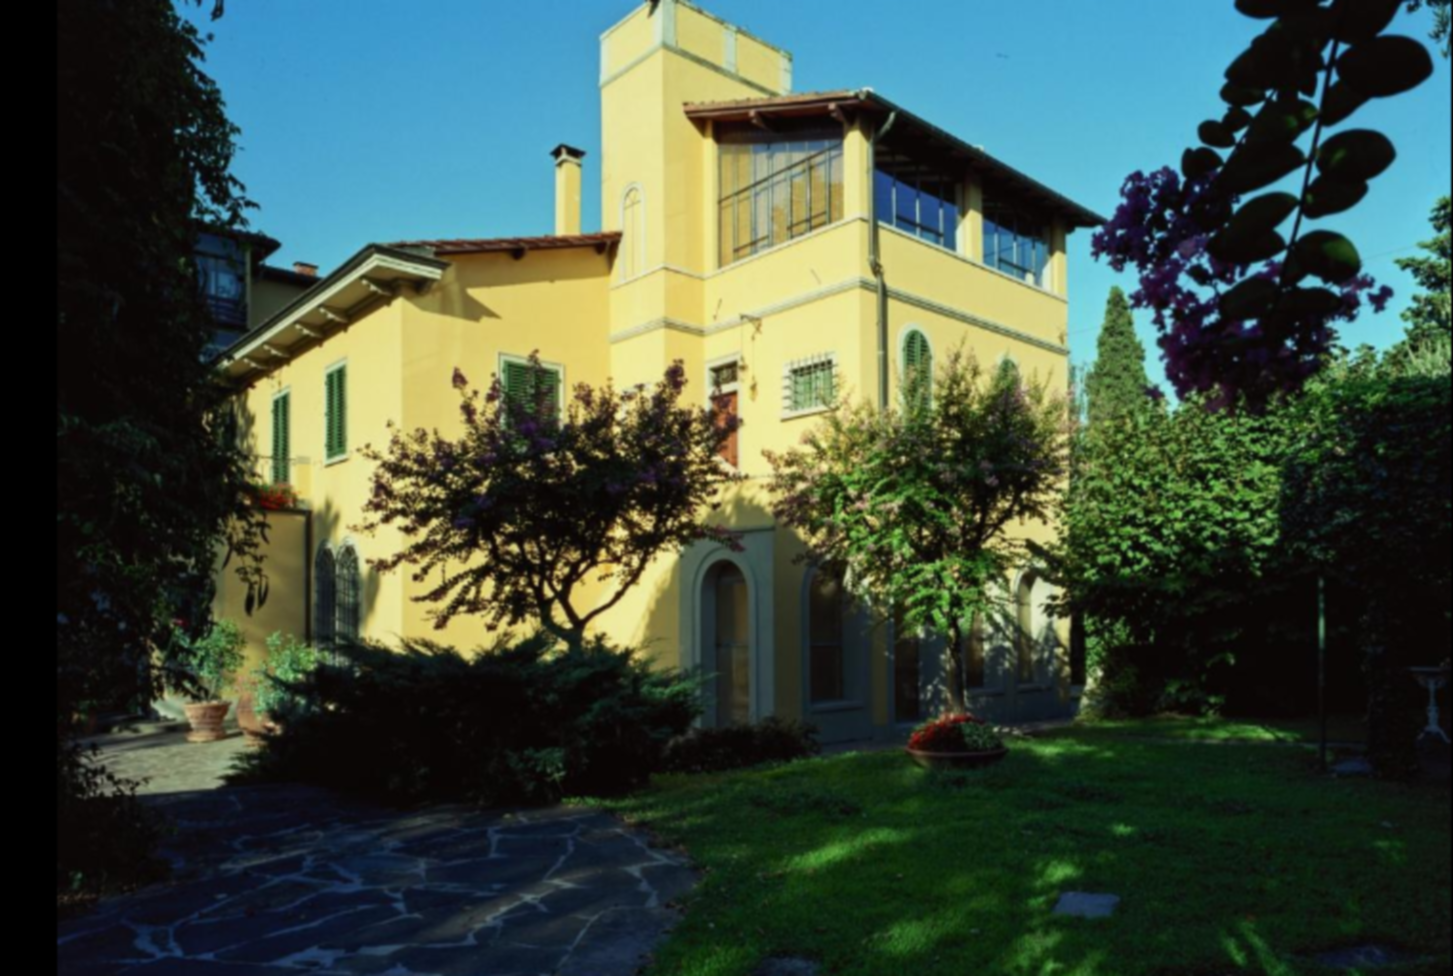 A house with trees in the background at Villa La Sosta.